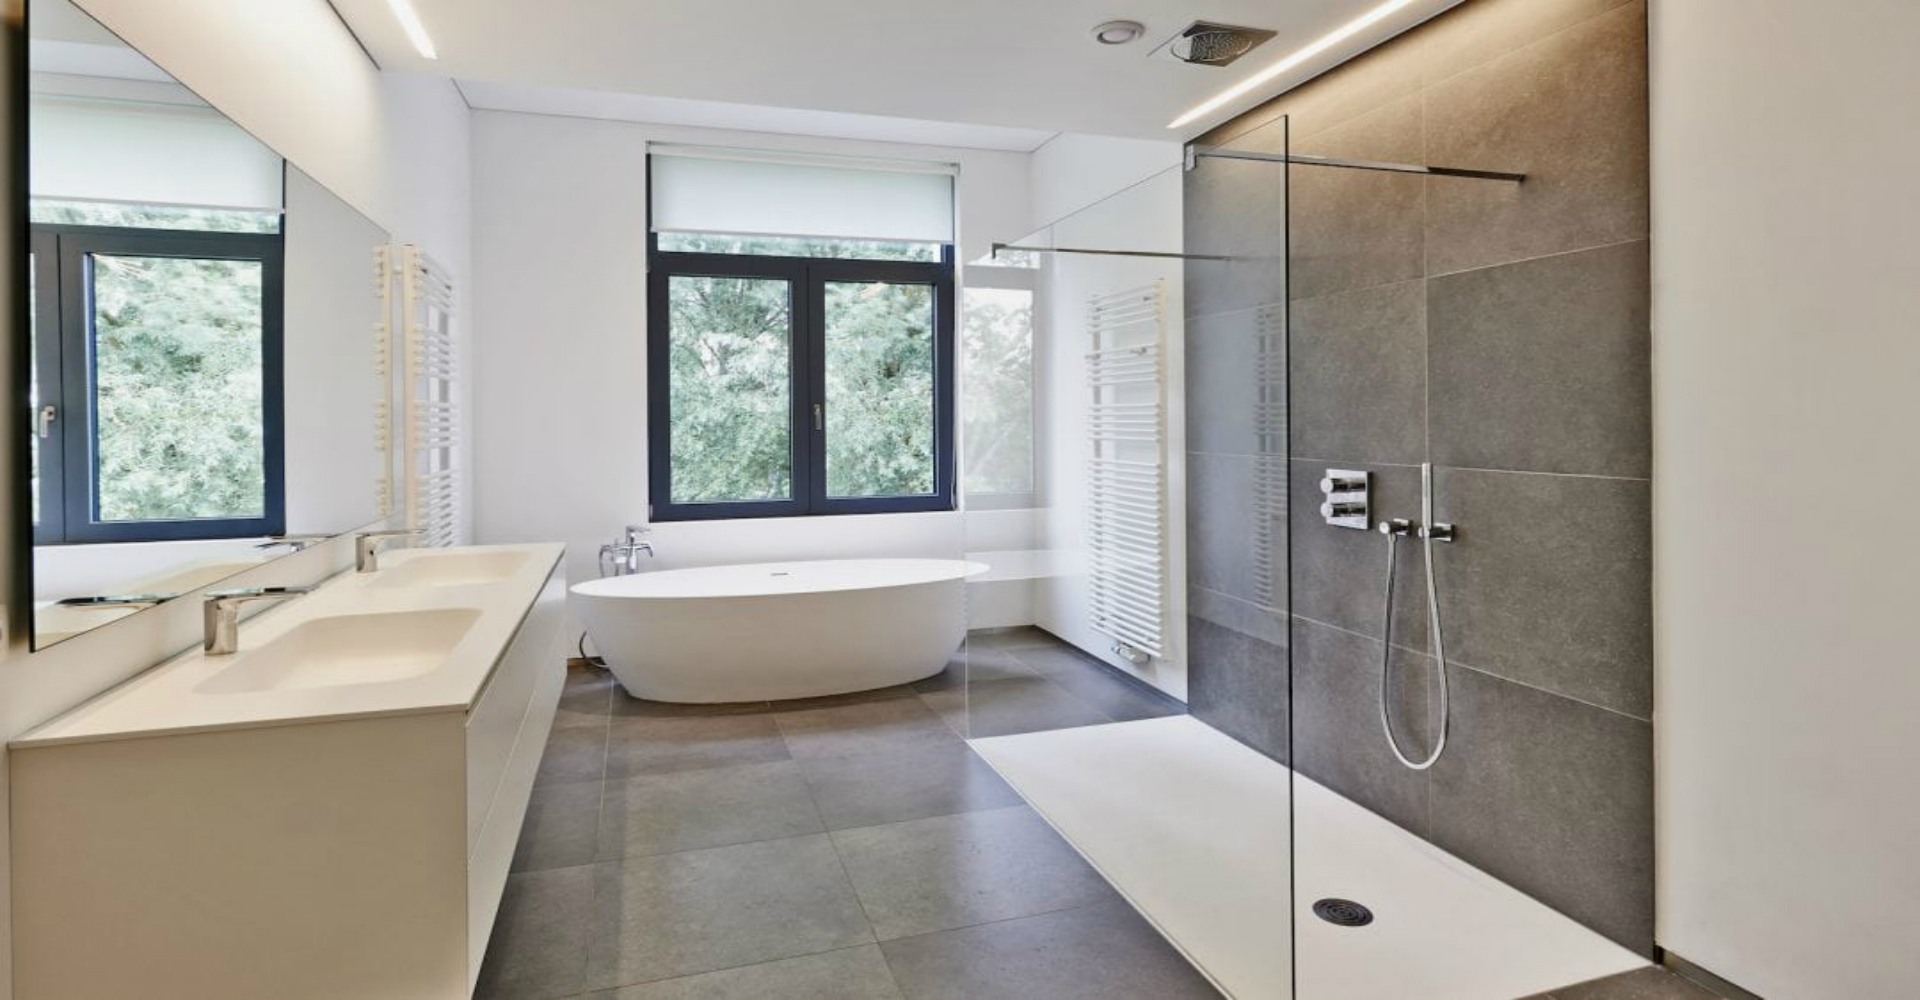 4 Easy Ways To Keep Your Frameless Shower Enclosure Clean